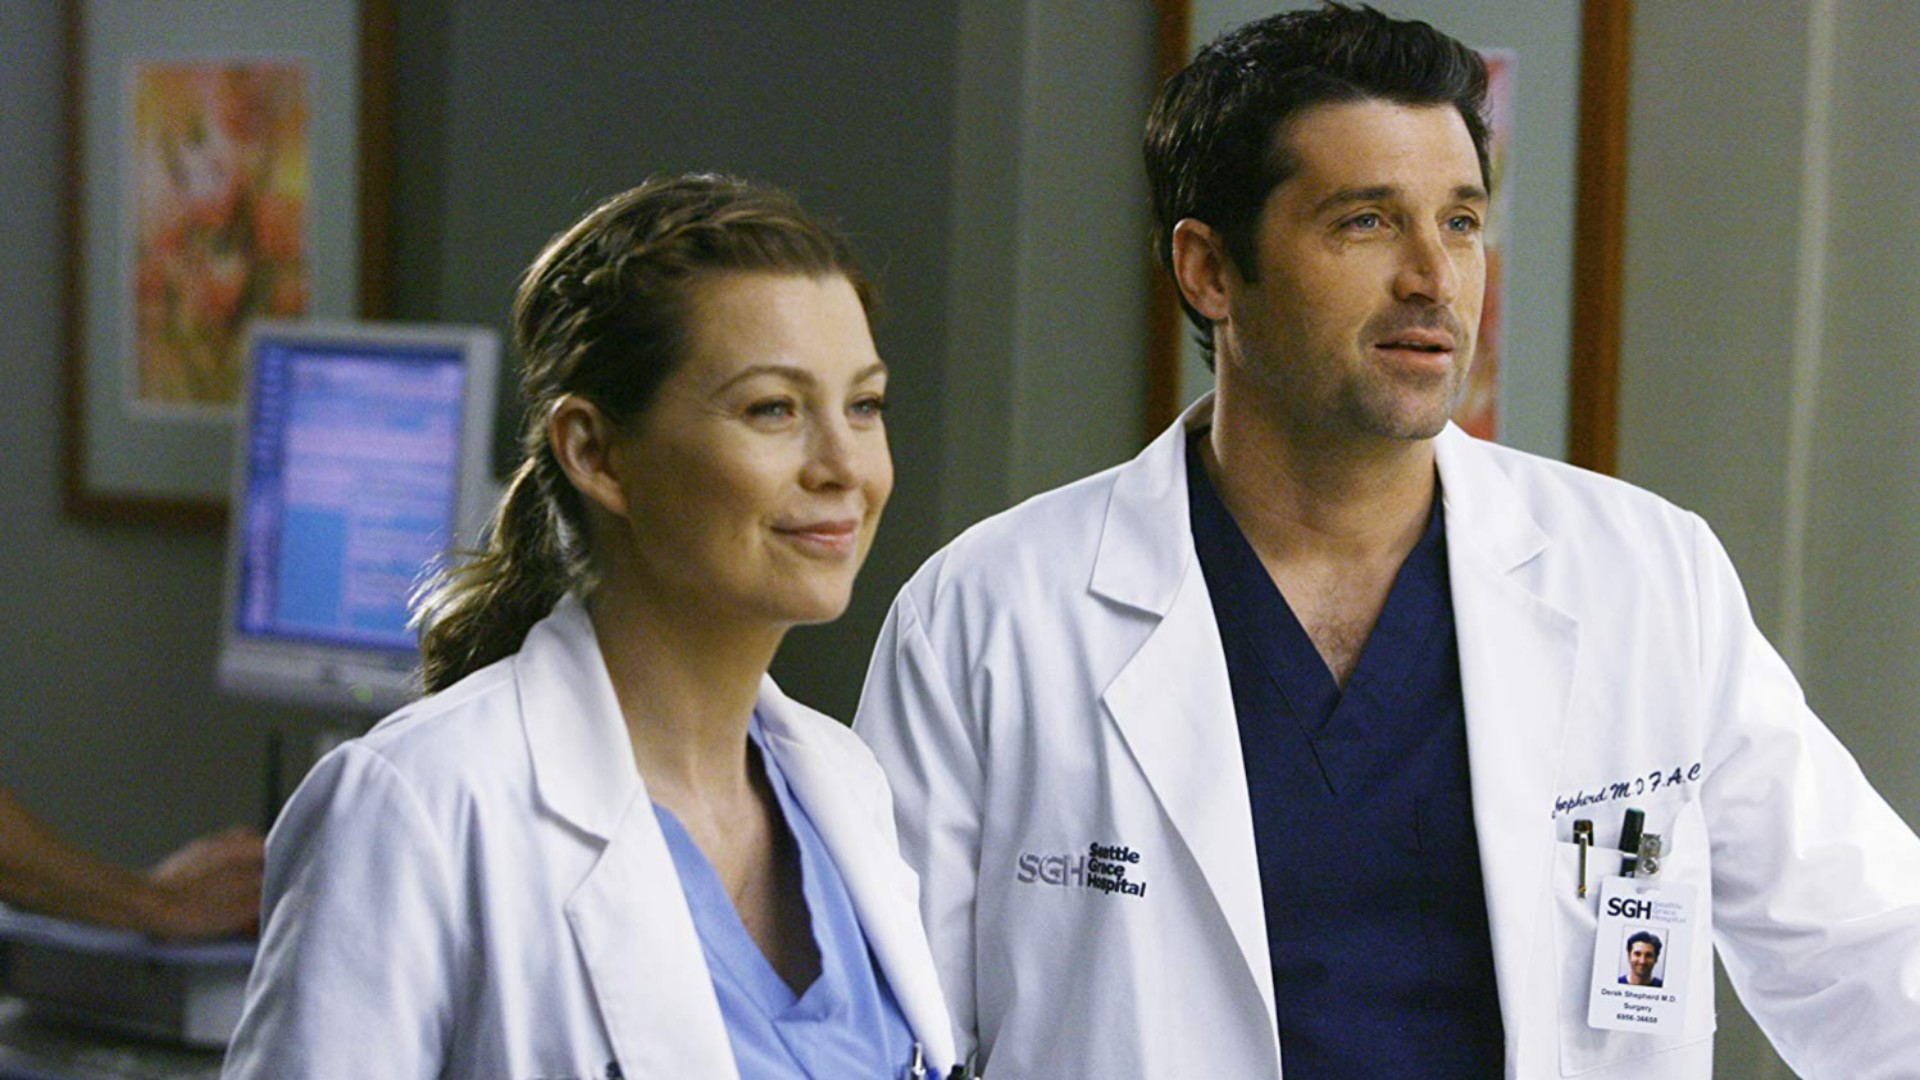 17. Meredith and Derek on 'Grey's Anatomy'